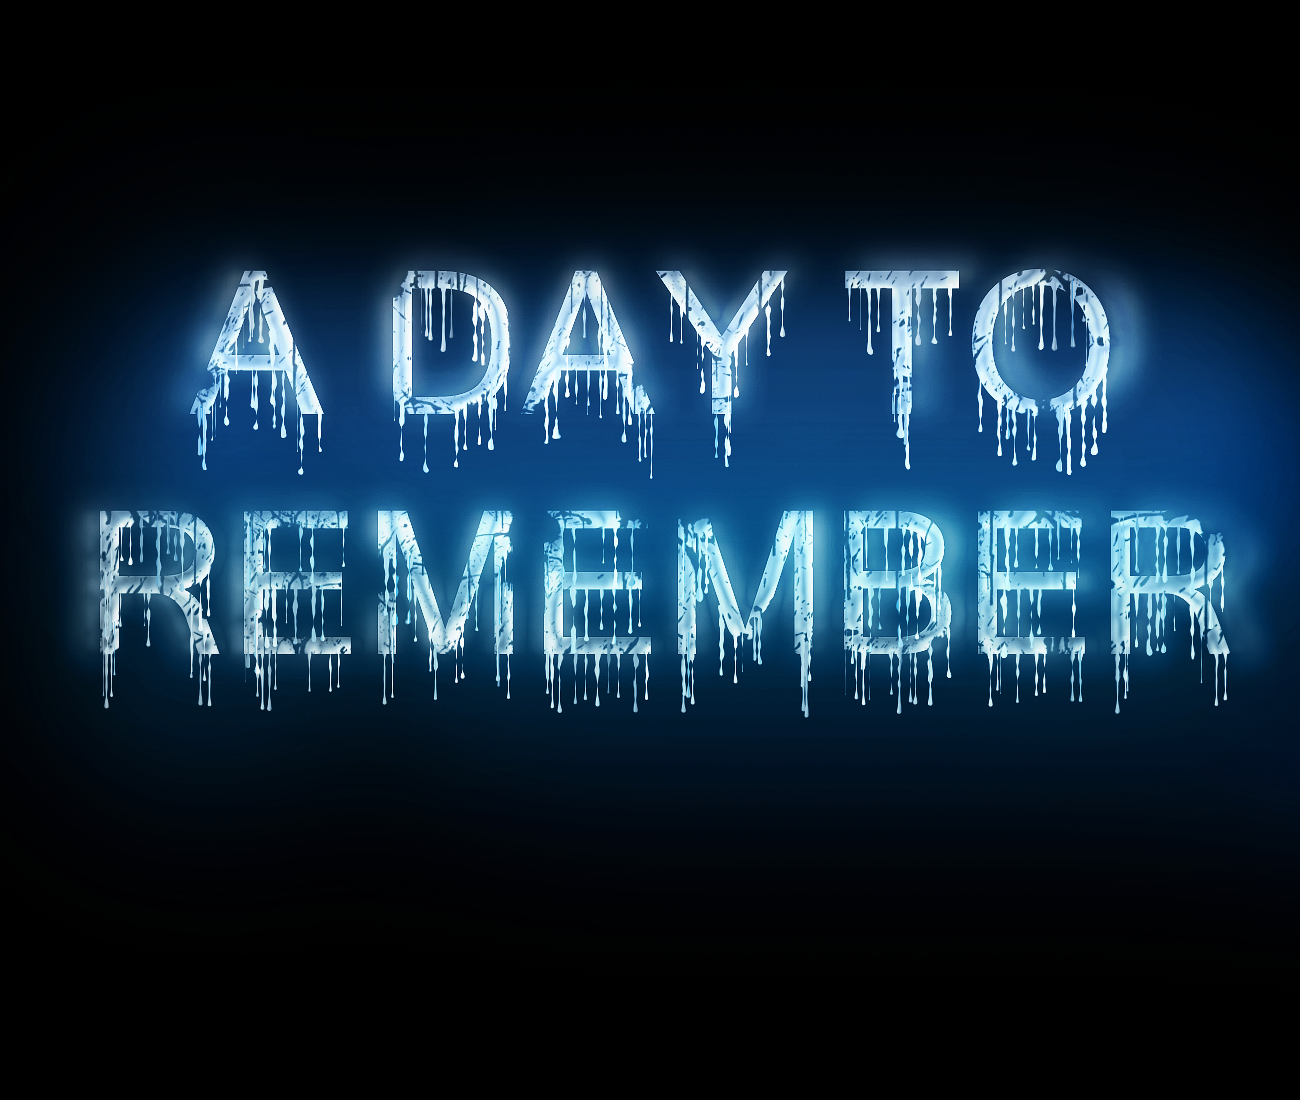 Day To Remember Computer Wallpapers Desktop Backgrounds 1300x1100 1300x1100